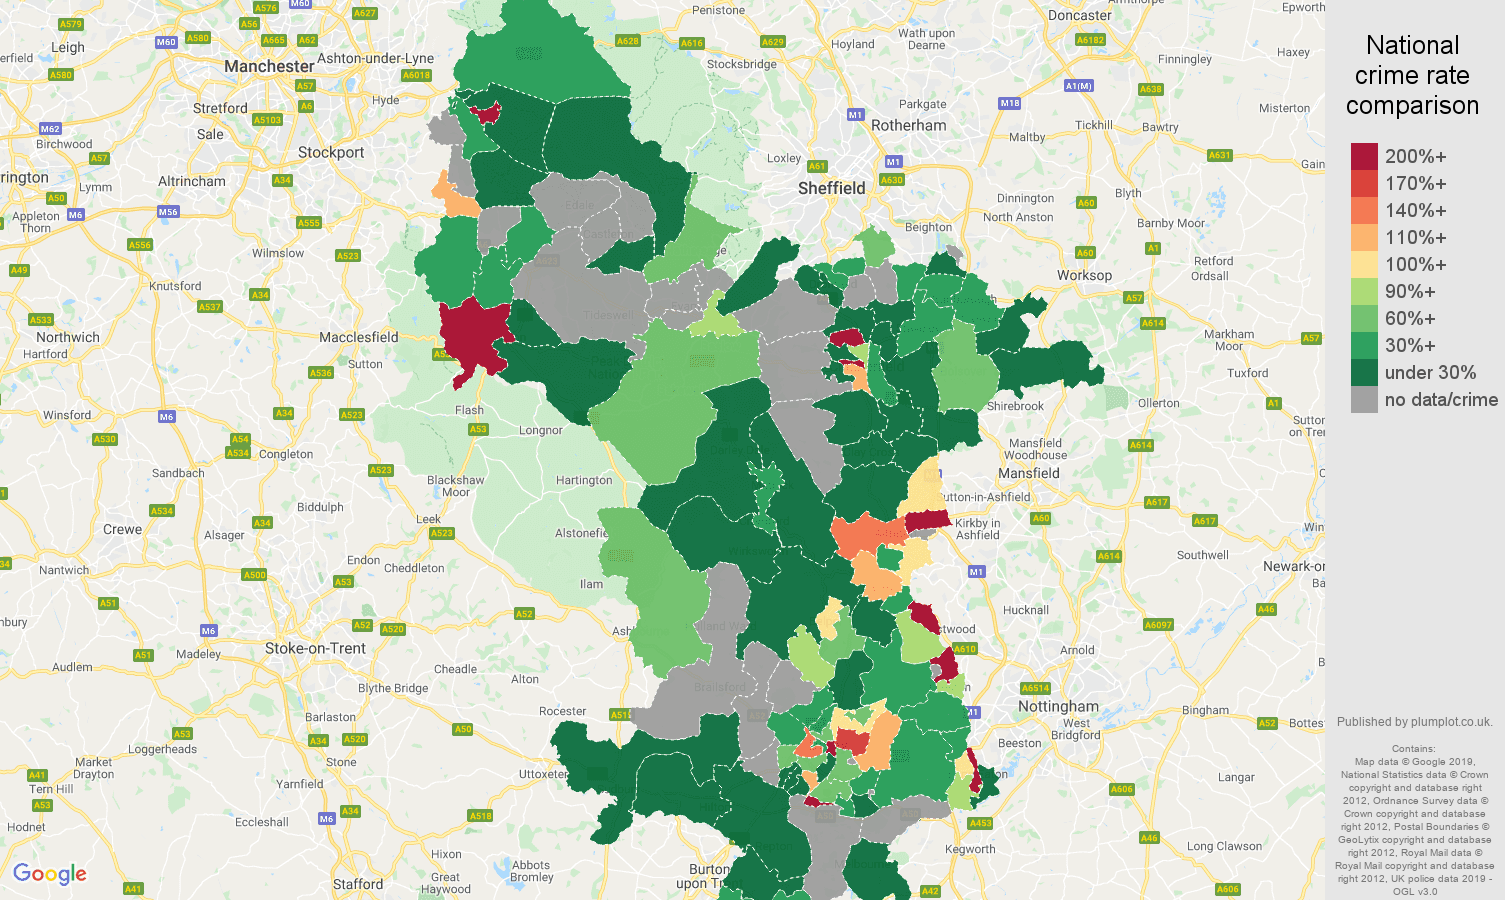 Derbyshire shoplifting crime rate comparison map